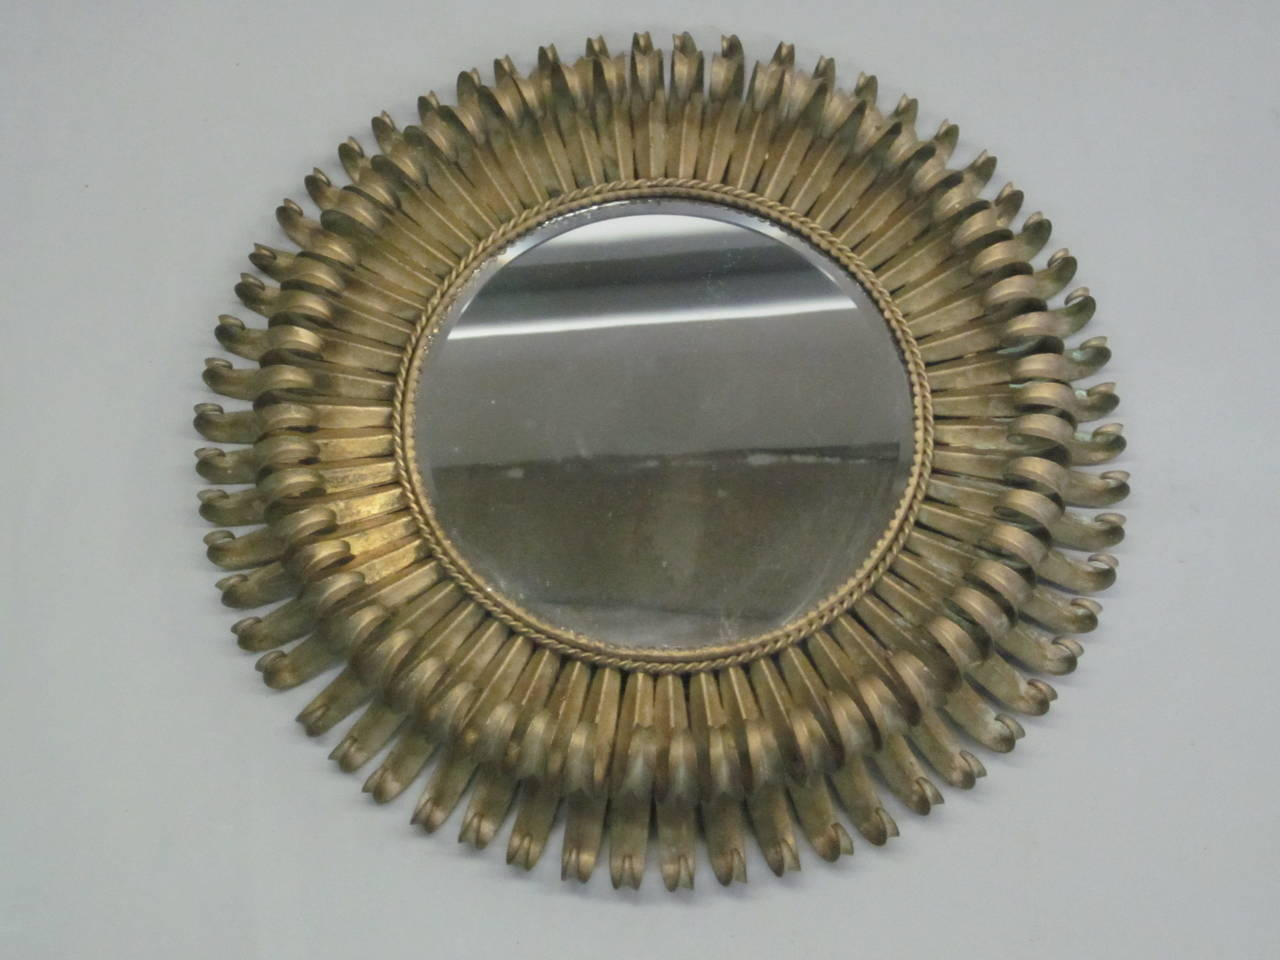 Elegant, stunning French Mid-Century mirror with a double level of sunburst rays that add depth and drama to the piece. The modern neoclassical frame of the mirror is in gilt iron.